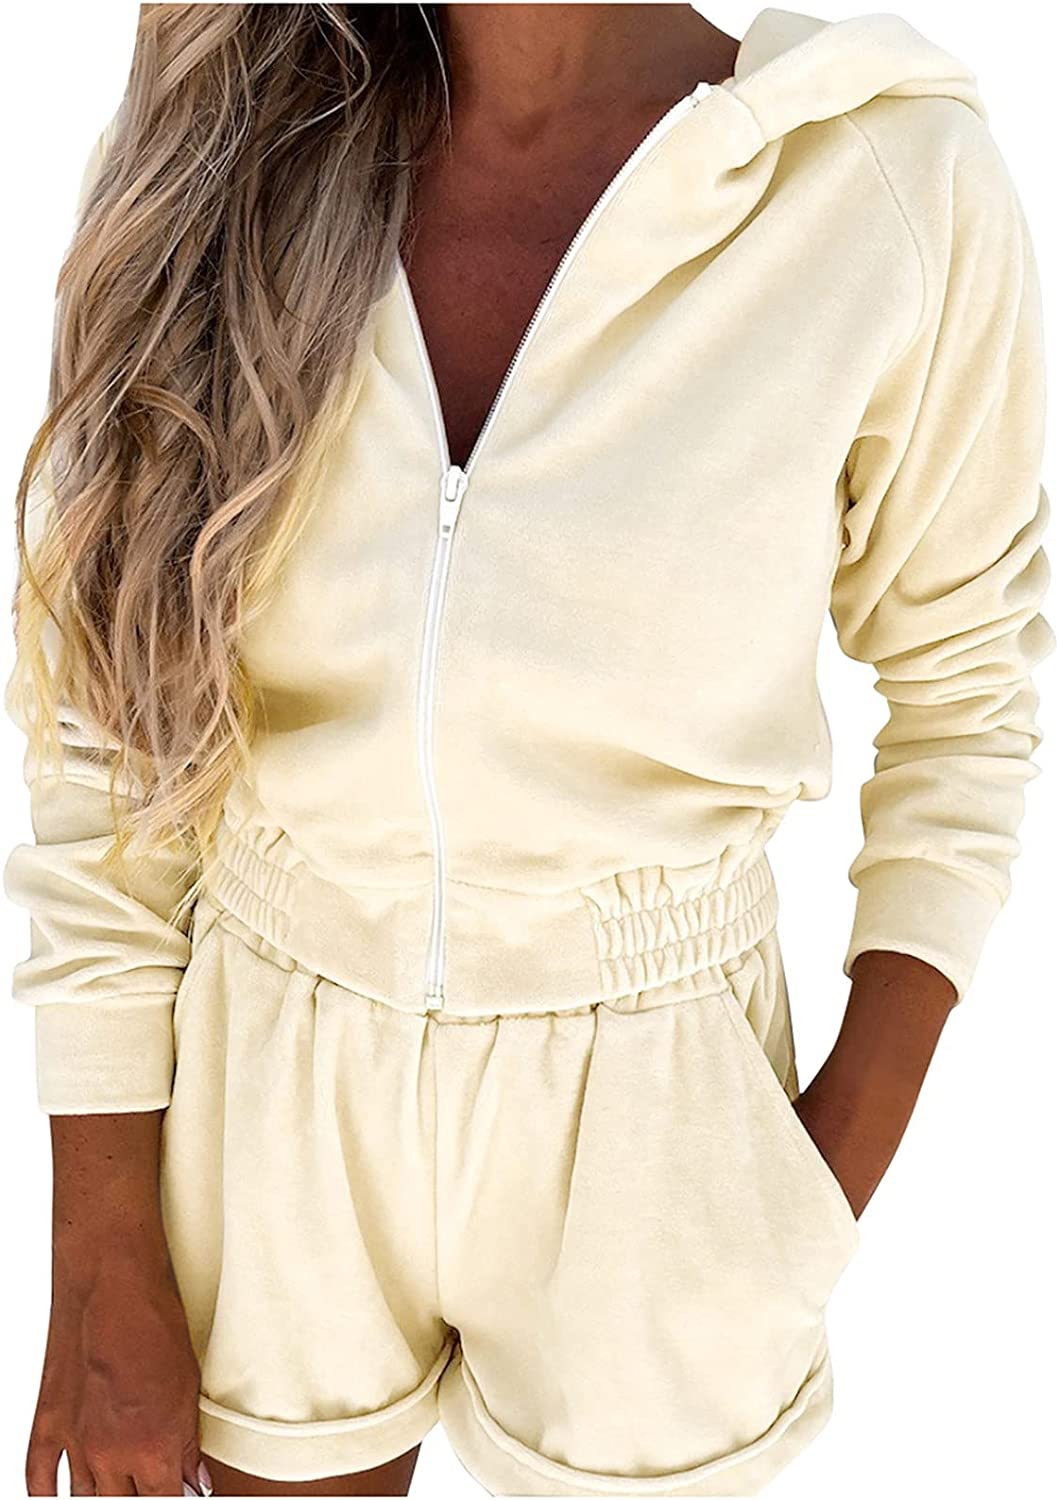 Women Suits Sets, Women's Fashion Sports and Leisure Hooded Sweater Set Two Piece Set